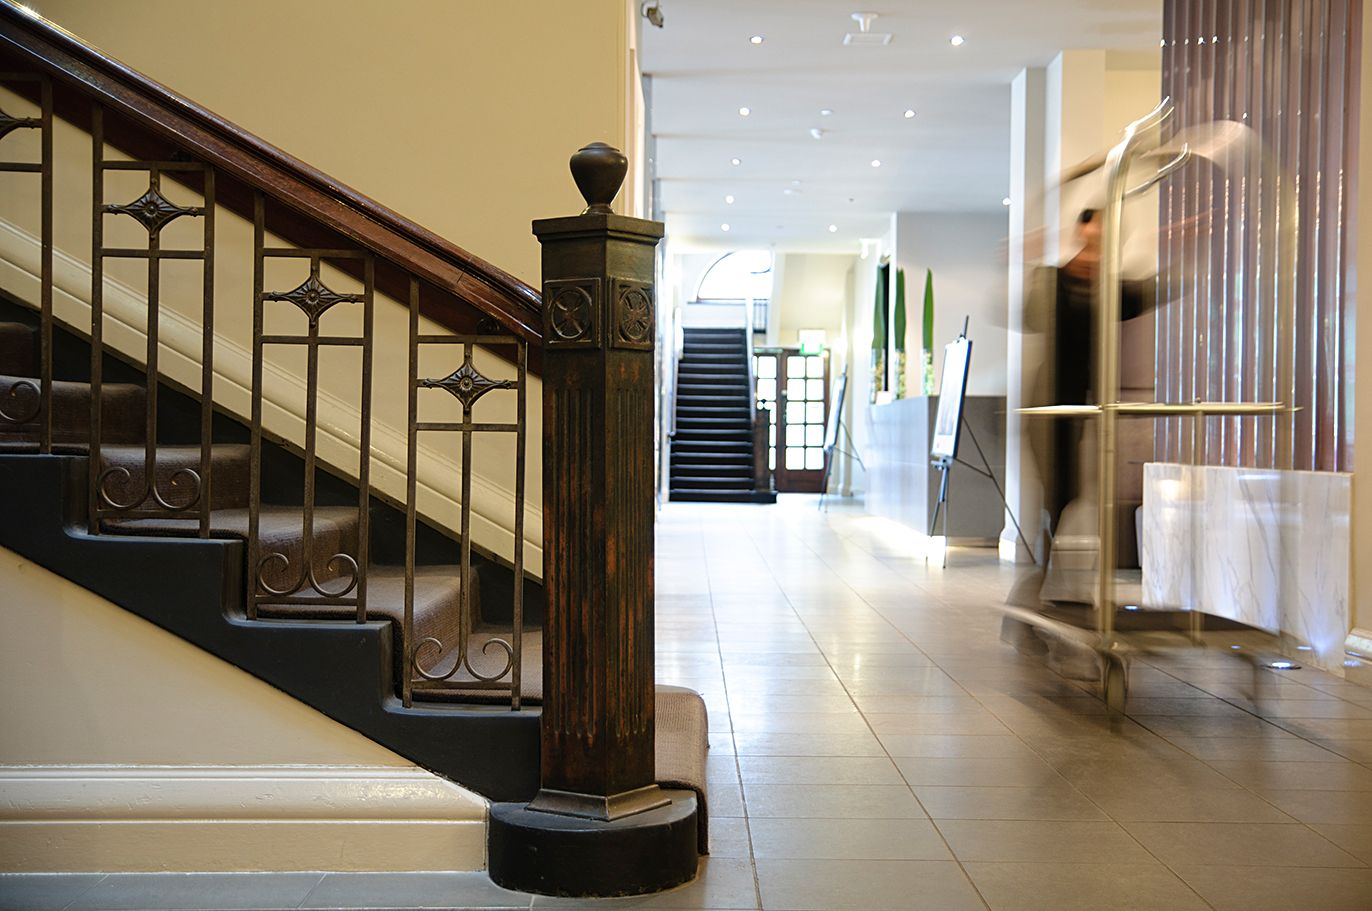 The Mansion Hotel & Spa at Werribee Park, Victoria